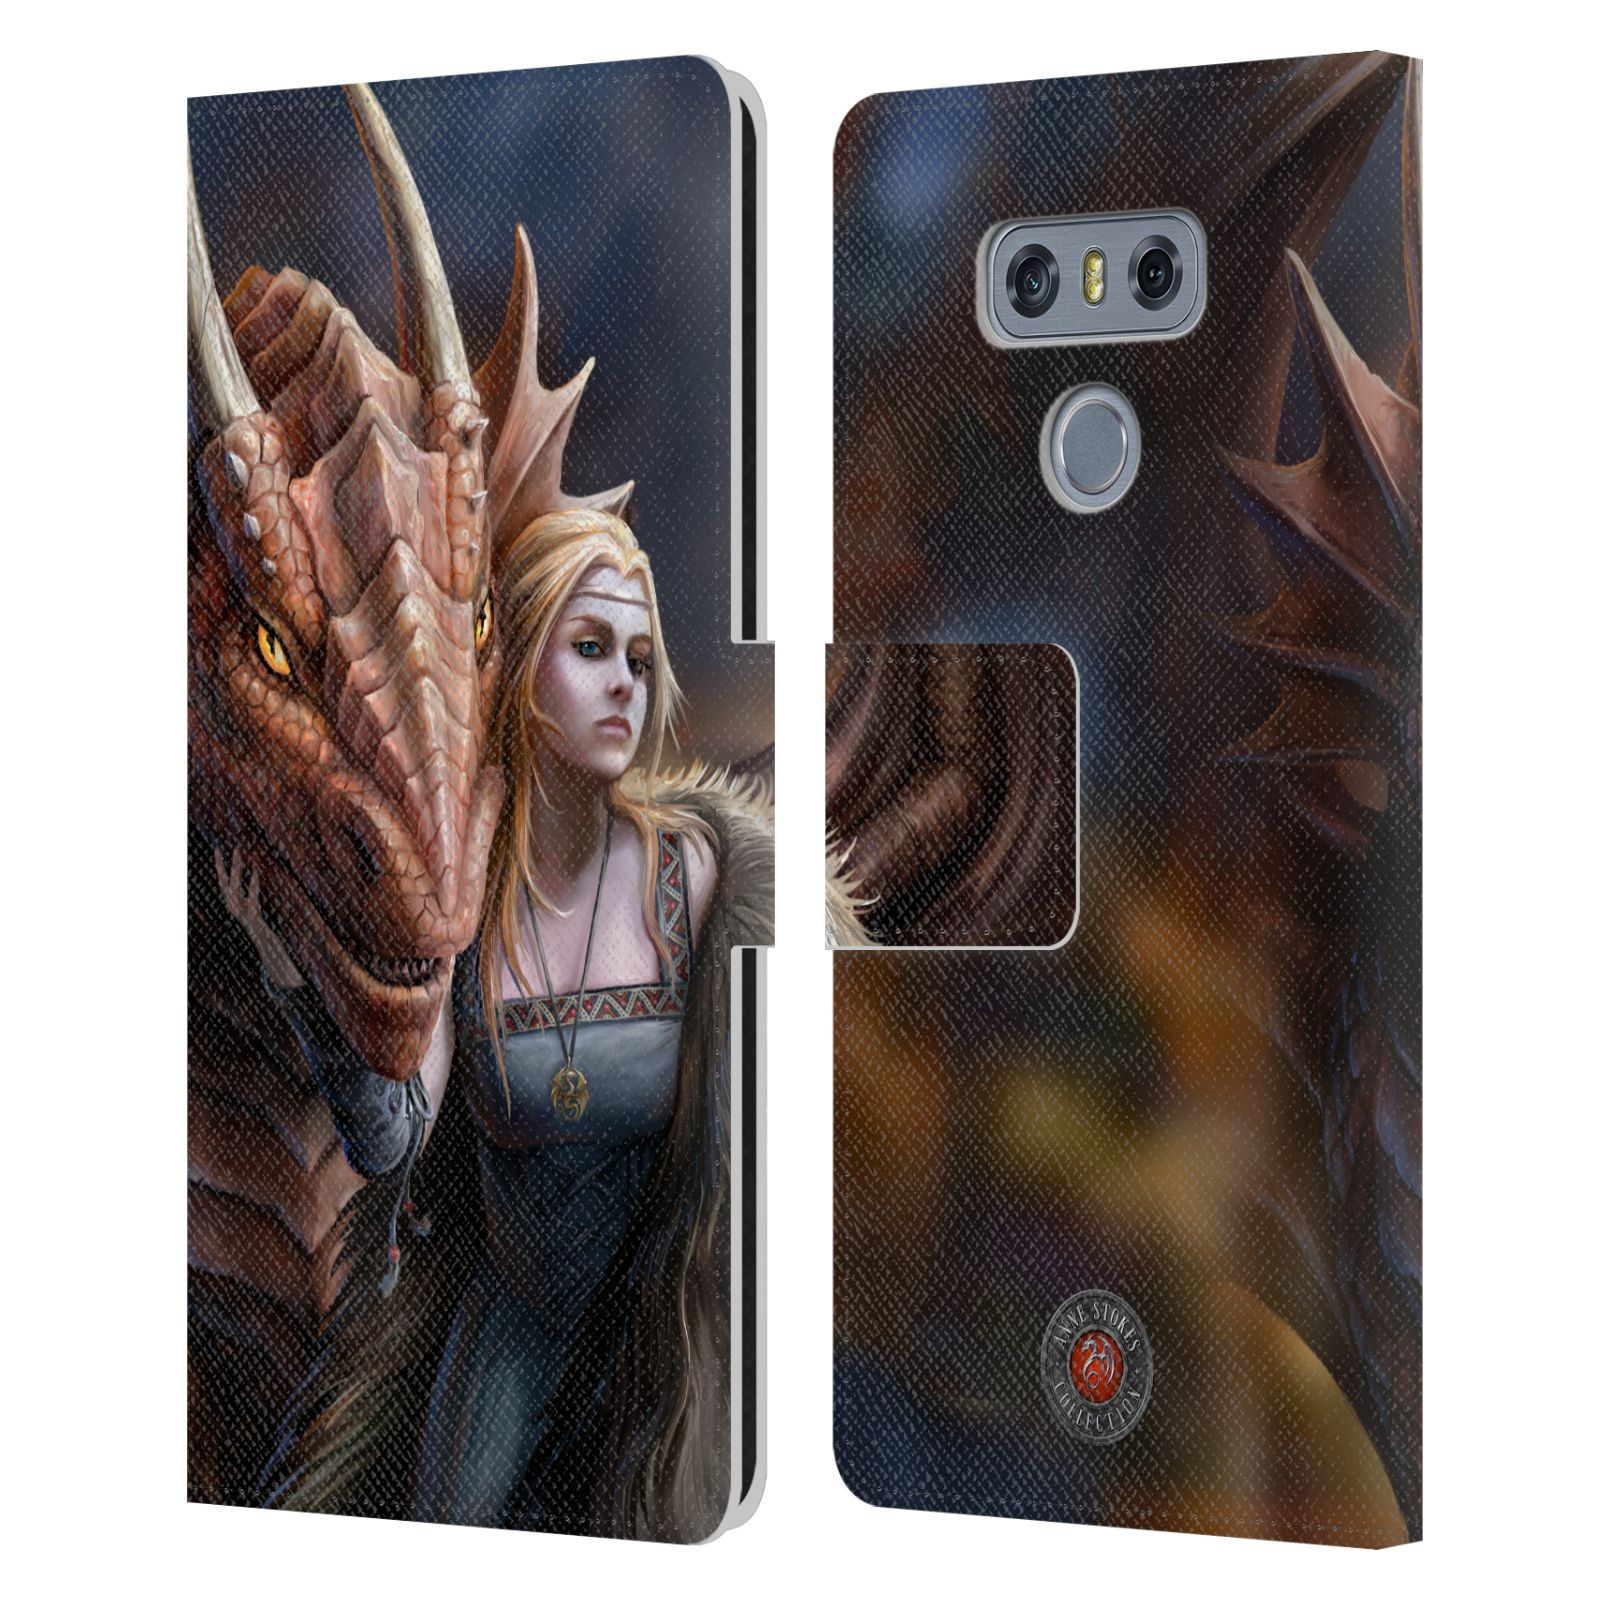 OFFICIAL-ANNE-STOKES-DRAGON-FRIENDSHIP-2-LEATHER-BOOK-CASE-FOR-LG-PHONES-1